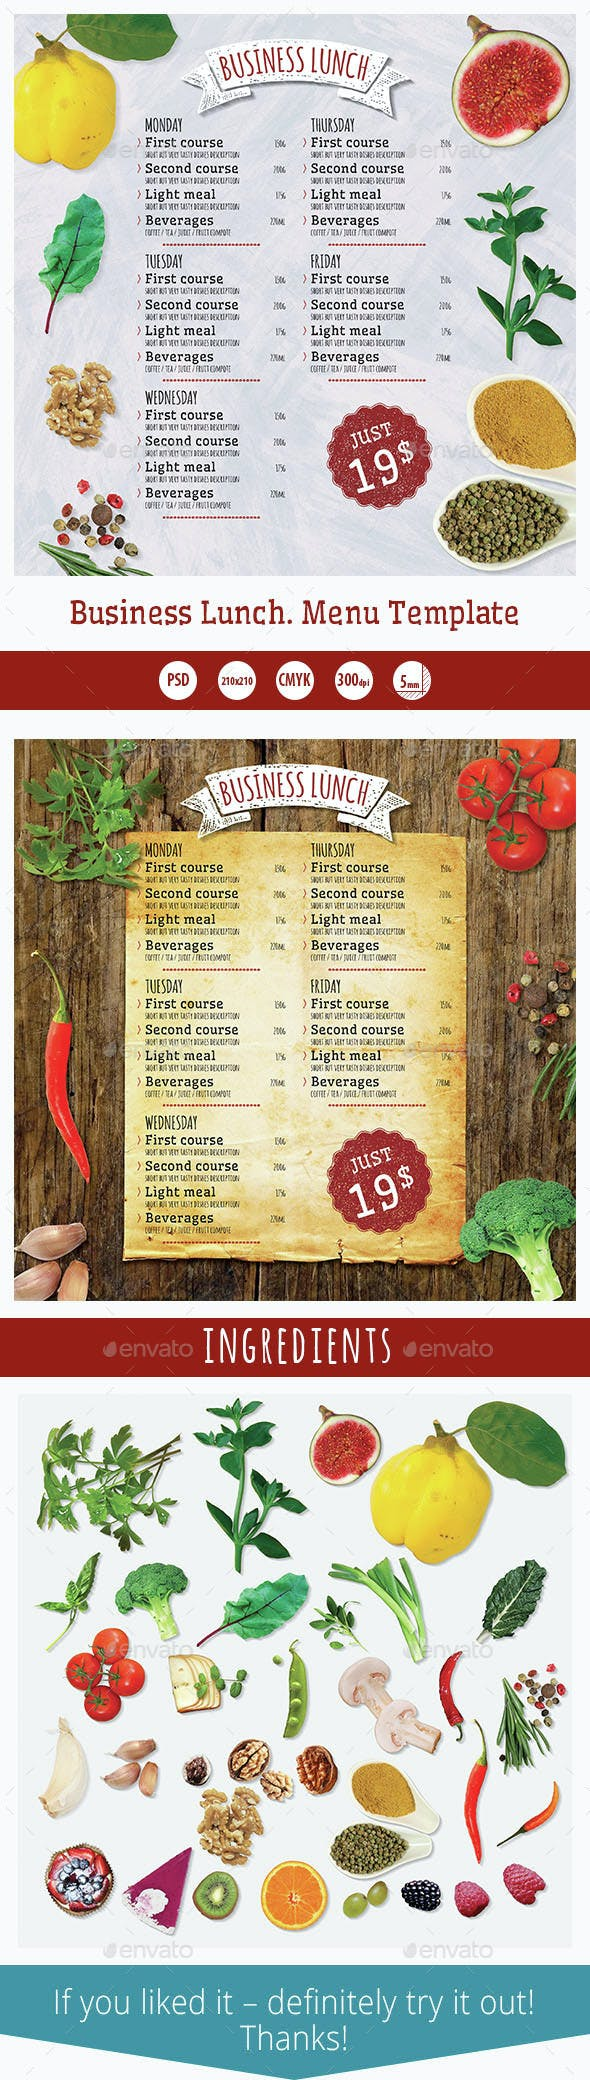 business lunch menu template by kreatorr graphicriver